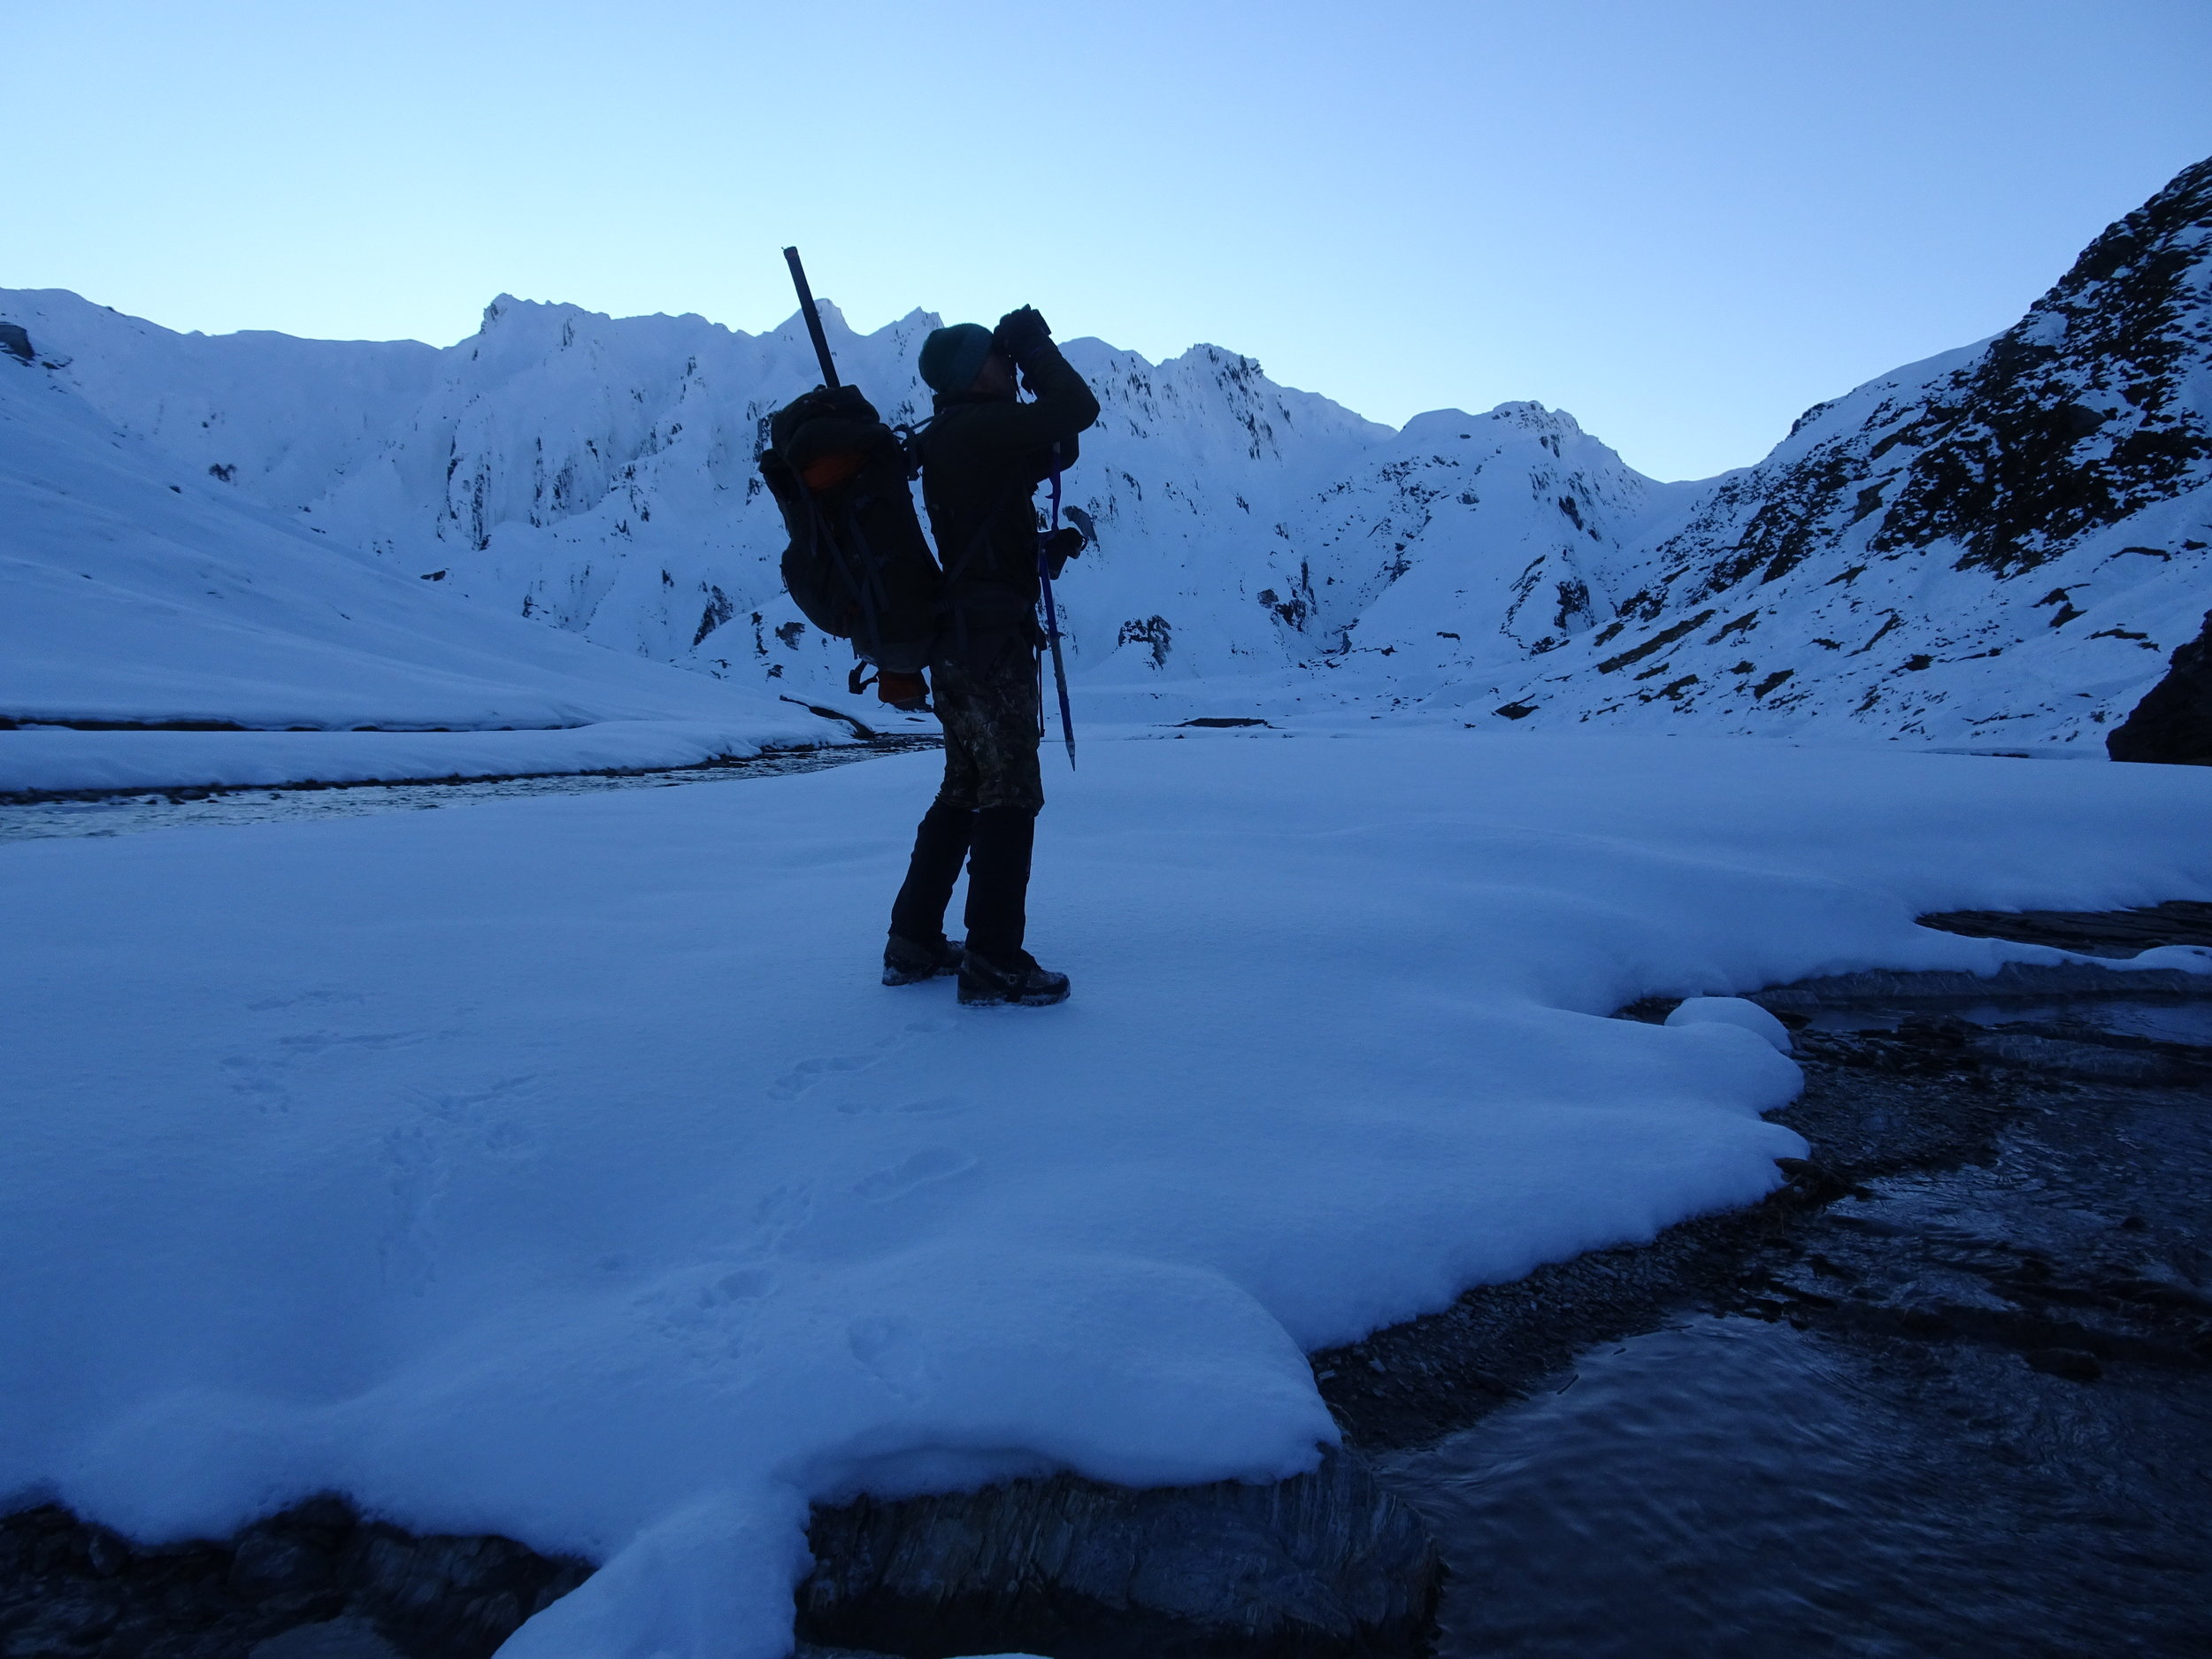 glassing for tahr in the snow